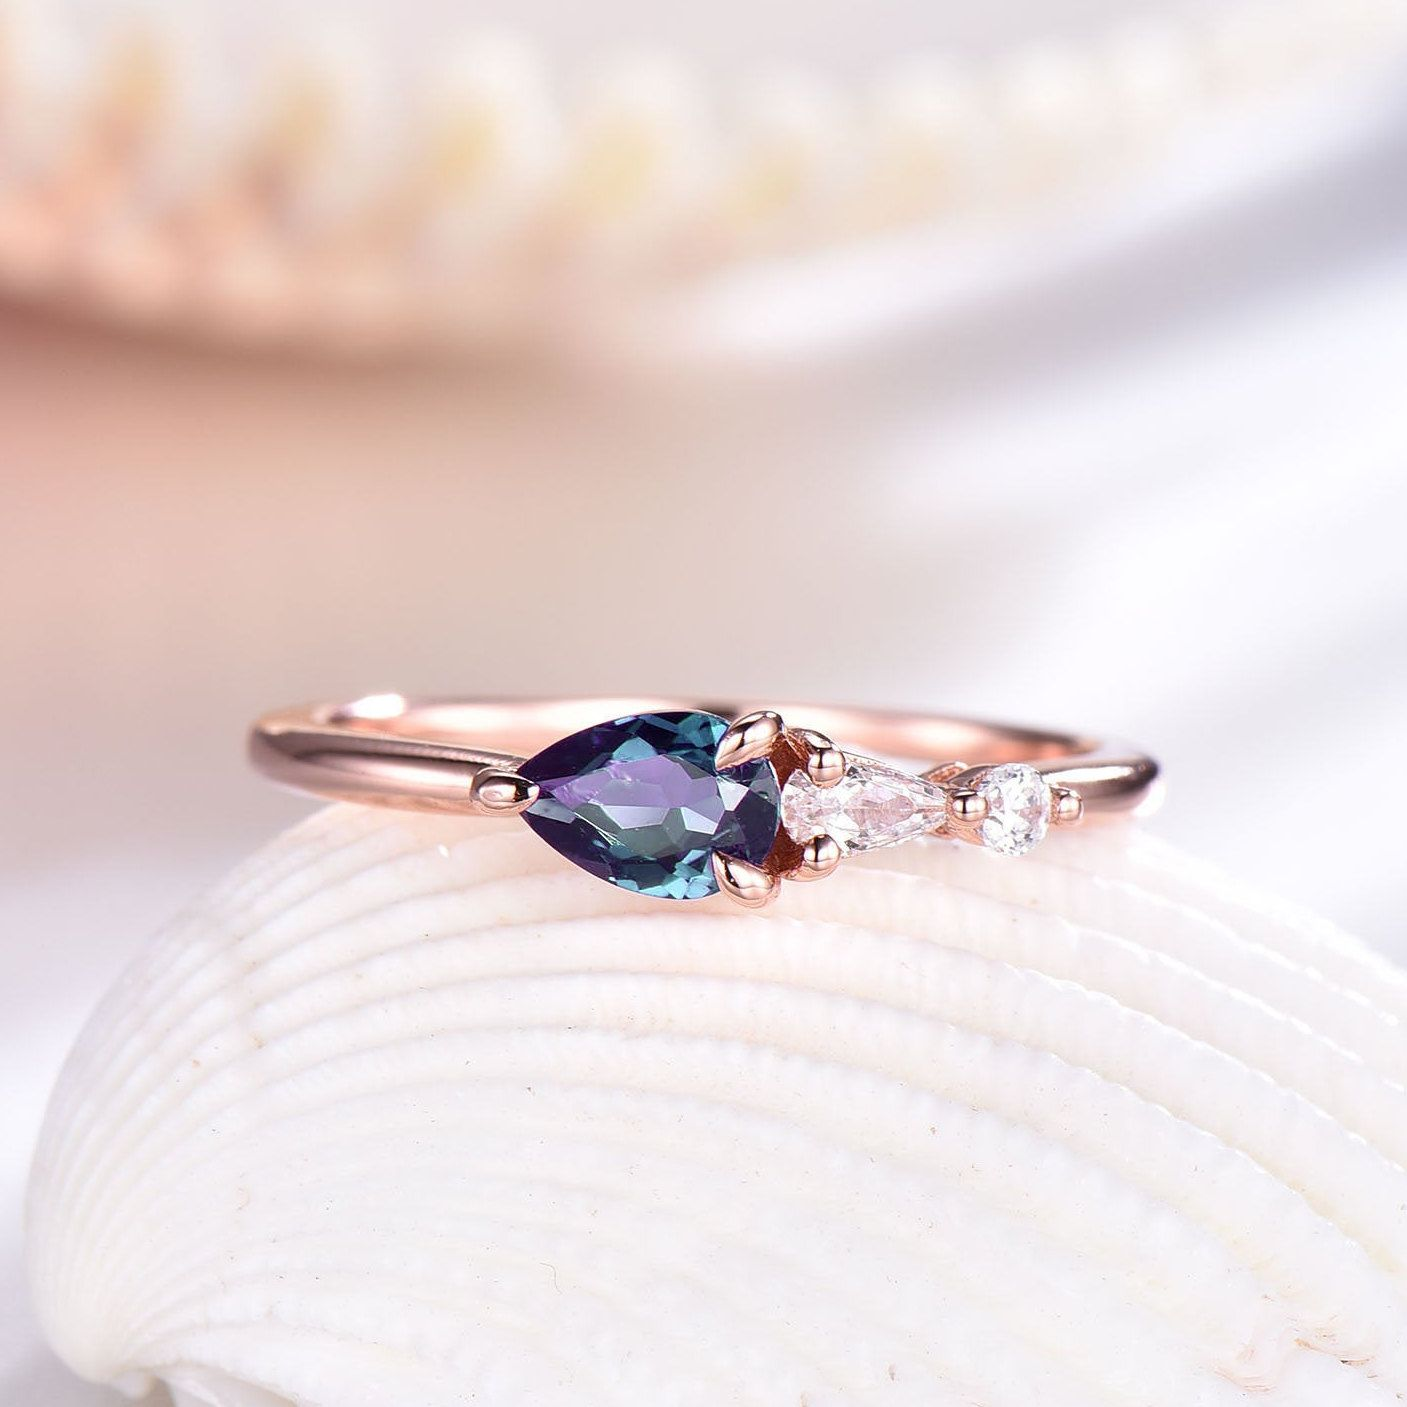 Alexandrite Engagement Ring Rose Gold Jewellery Birthday Gift for Her Vintage Promise Ring 925 Silver Wedding Ring Anniversary Gift